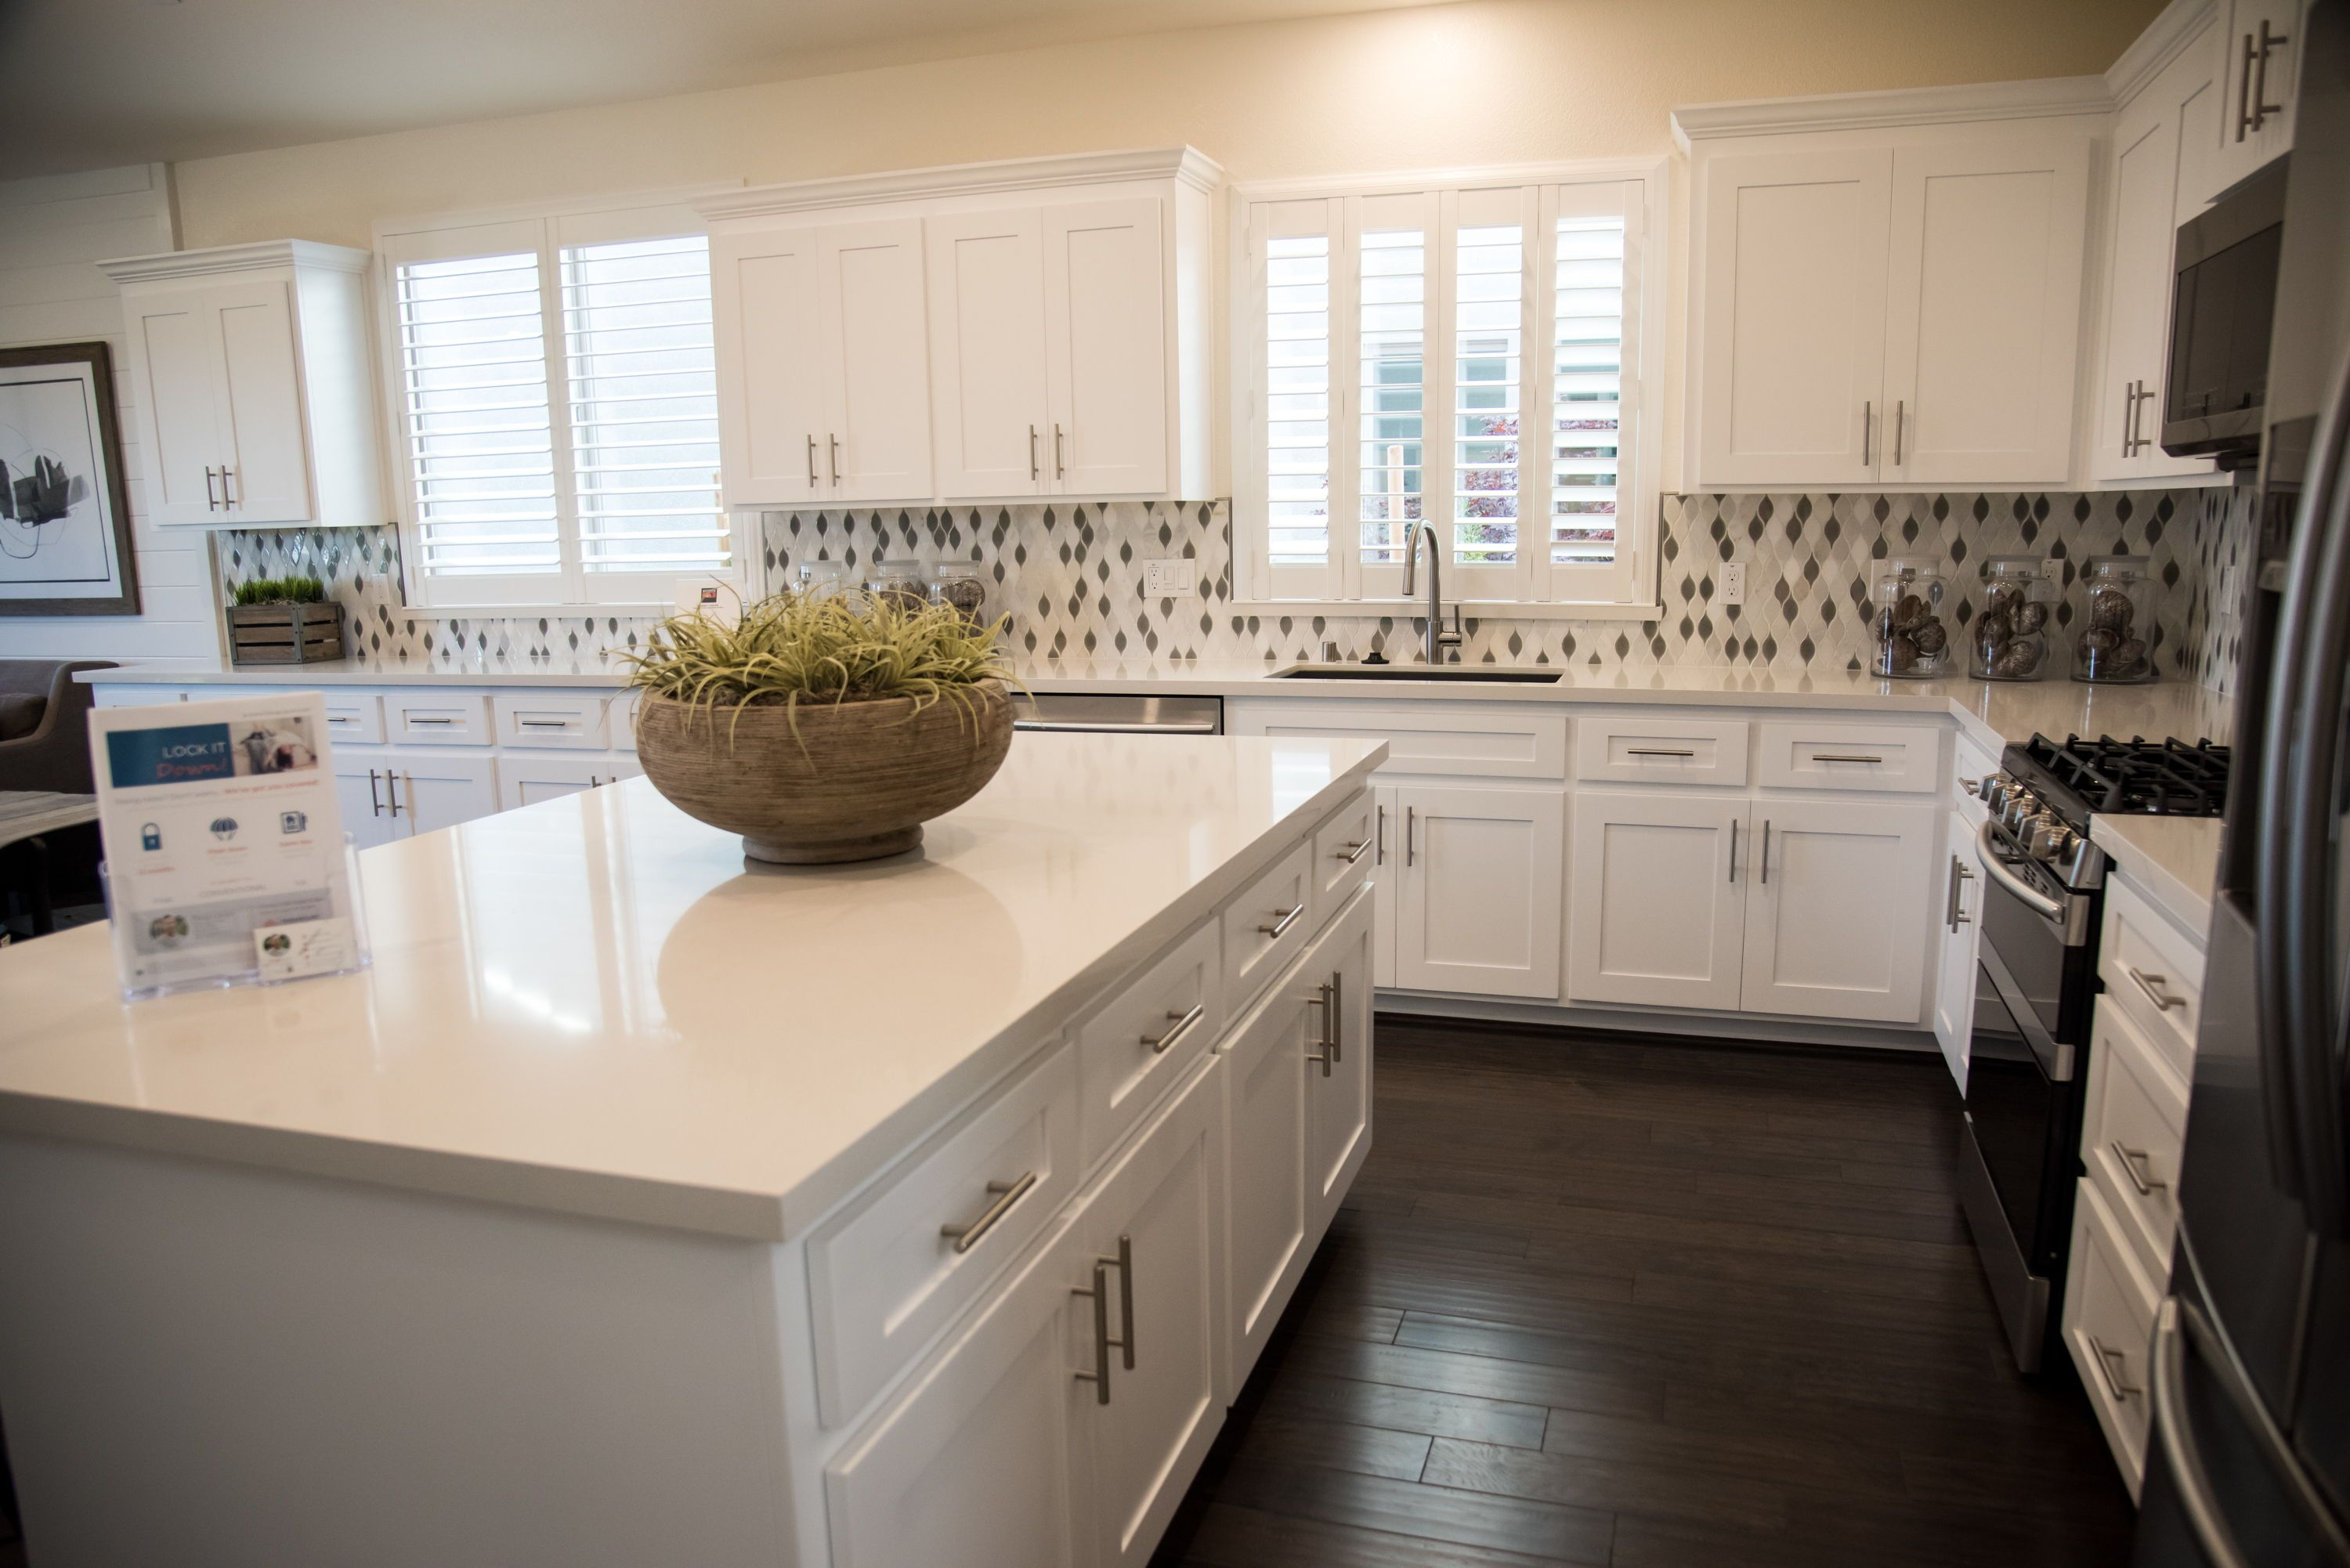 Westview Kitchen New Neighborhood In Whitney Ranch New Homes In Rocklin California Built By Jmc Homes Whitneyranch Spacious Kitchens Kitchen New Homes